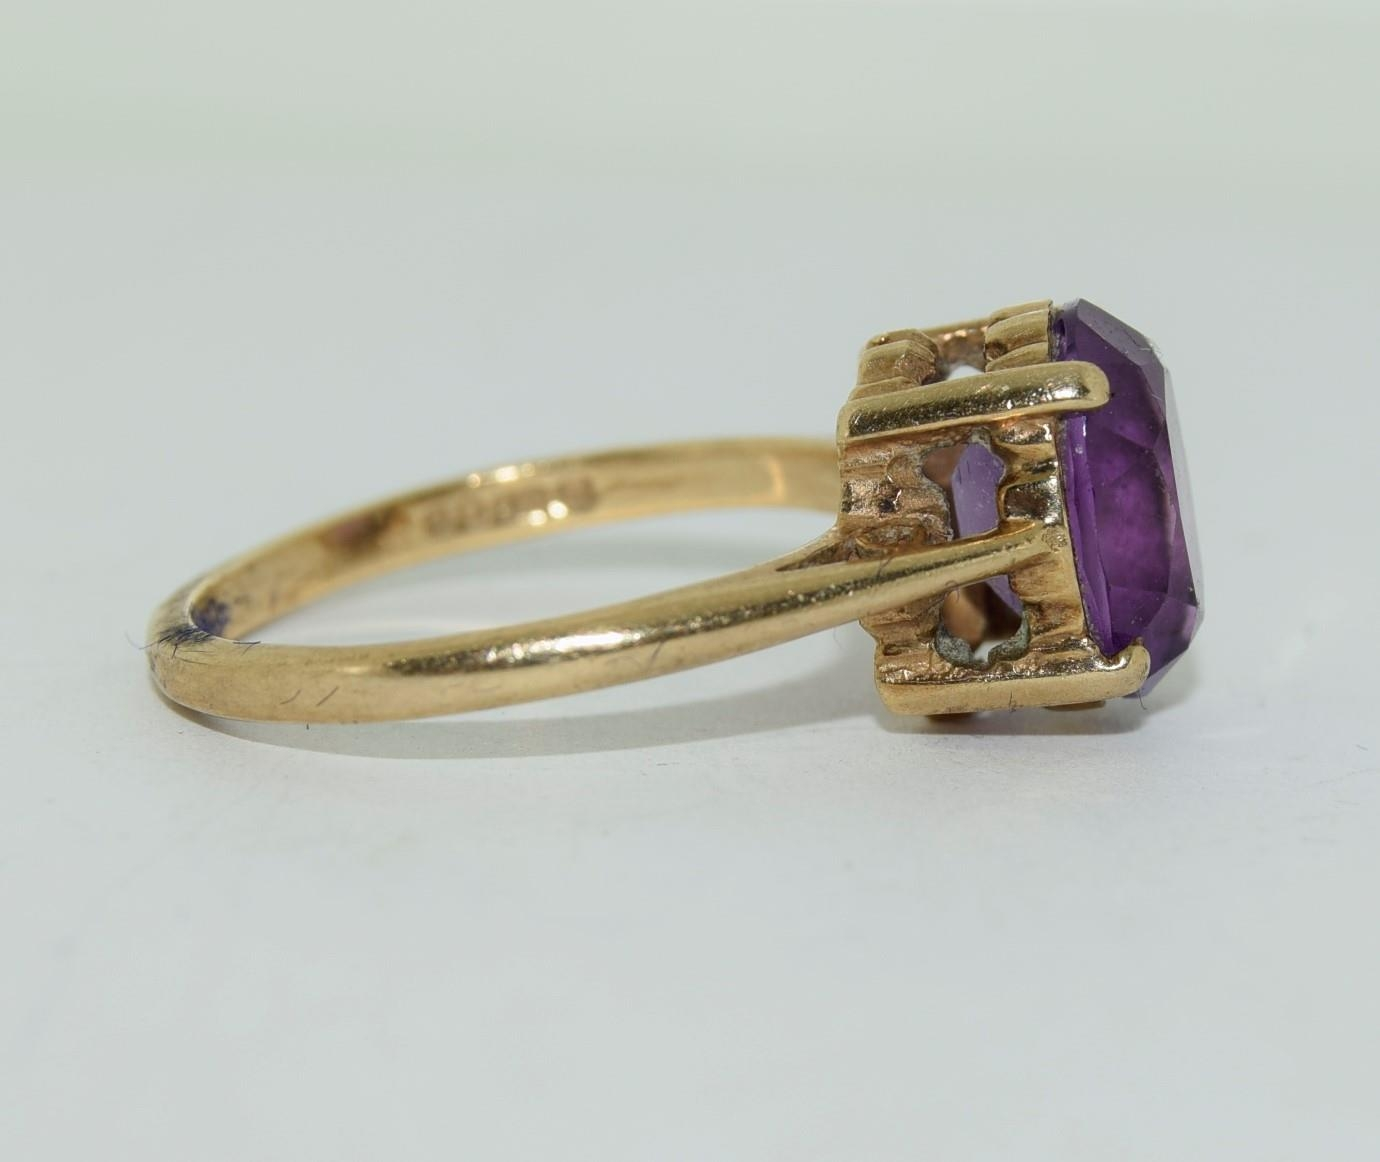 9ct gold ladies Amethyst ring size N - Image 3 of 12